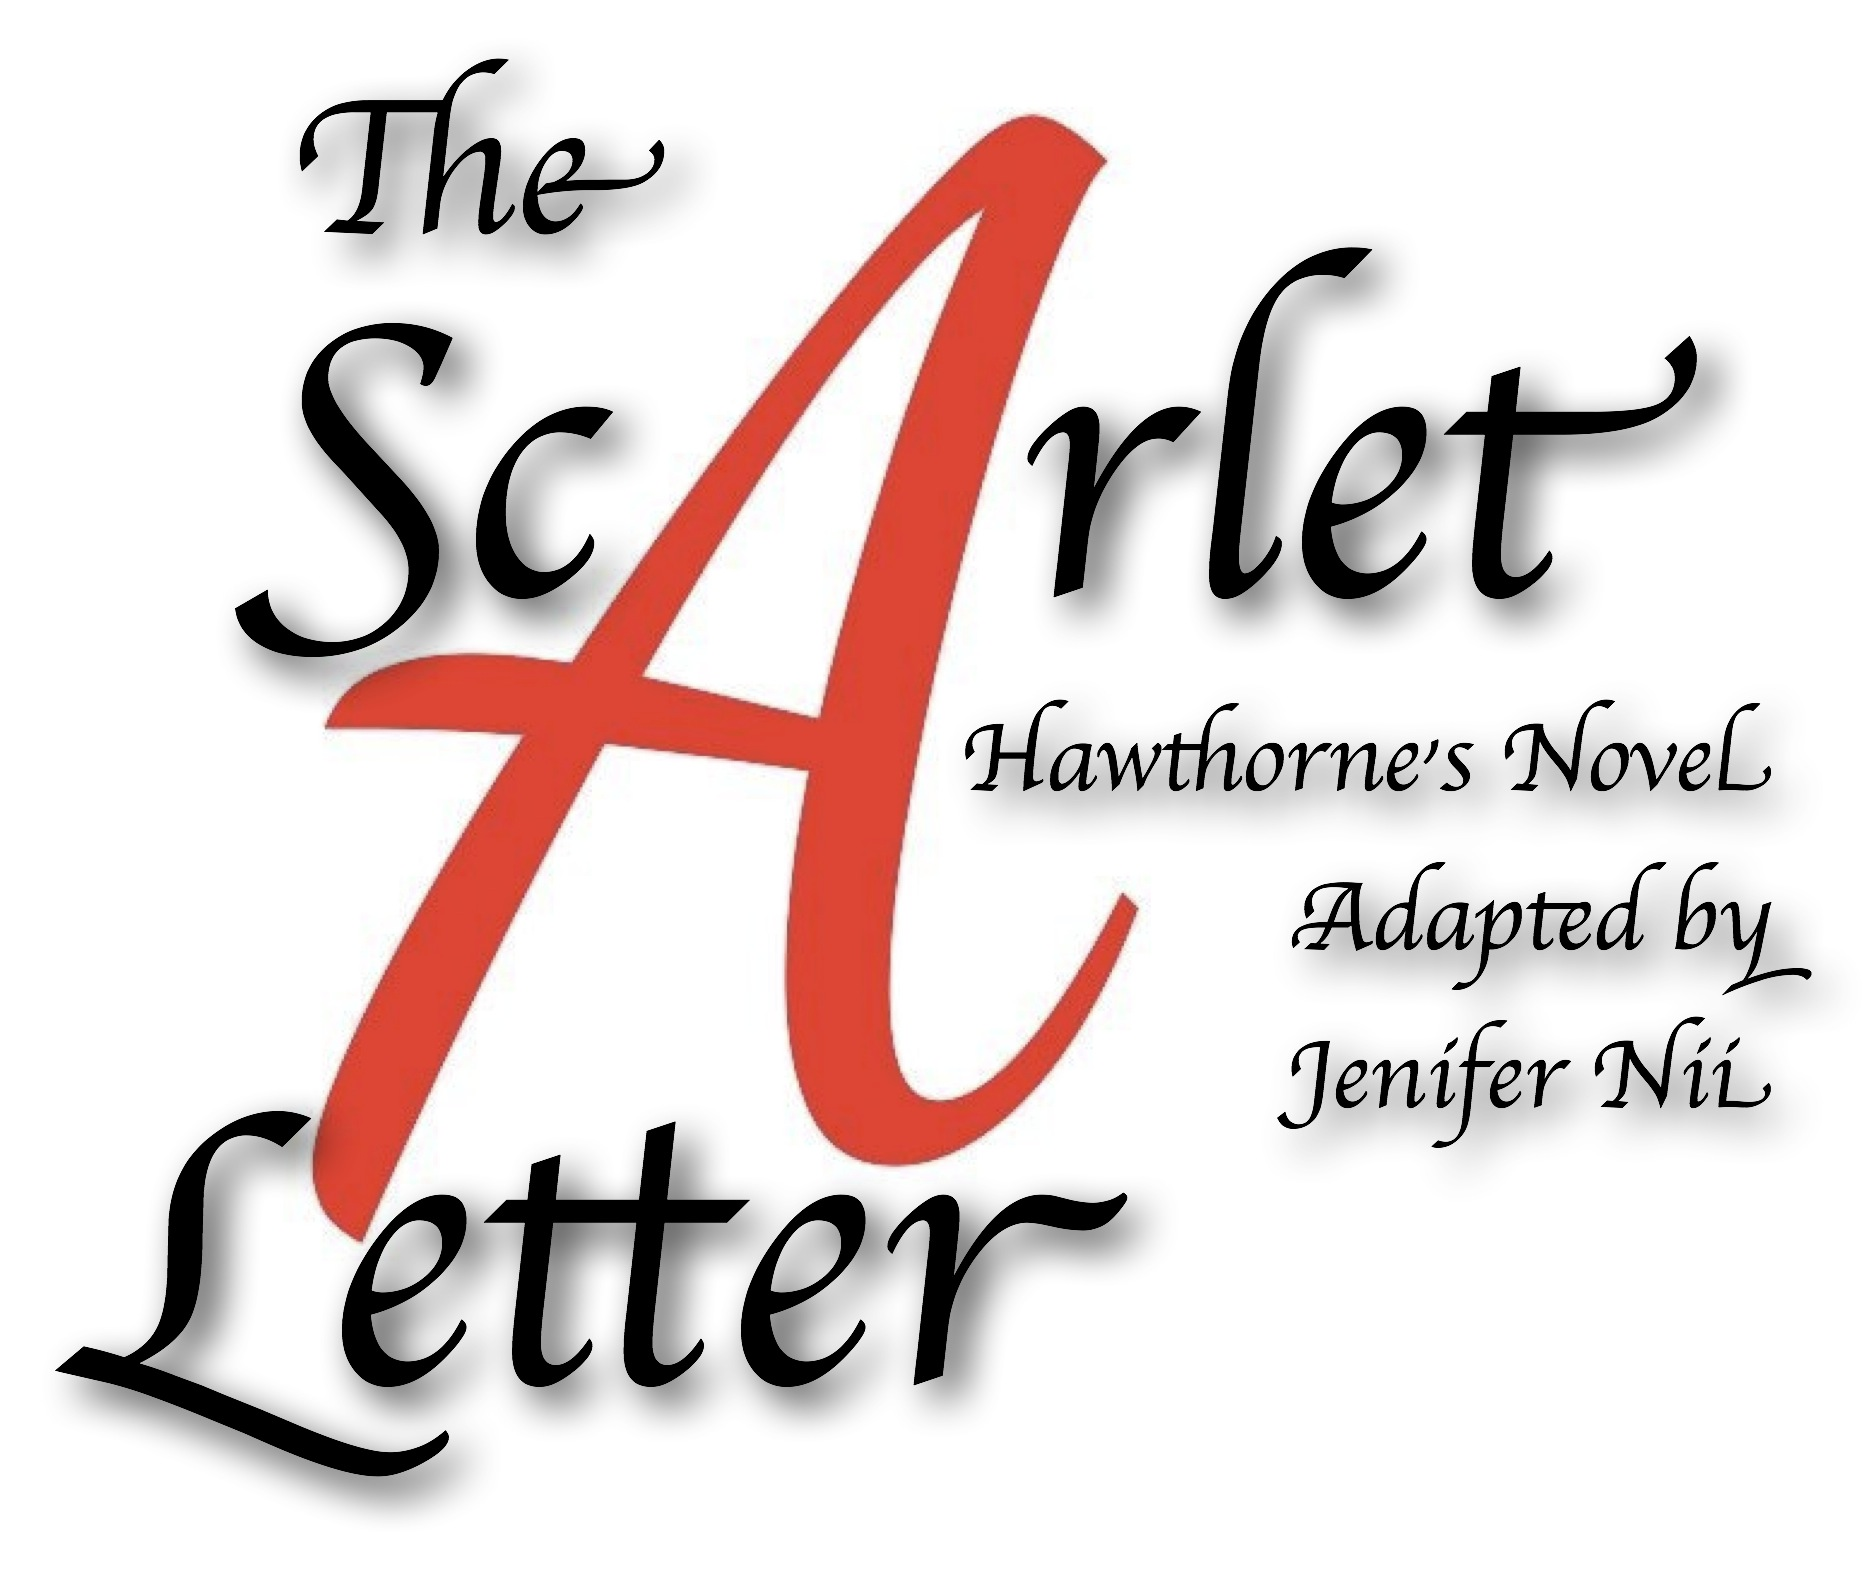 The Scarlet Letter A Play